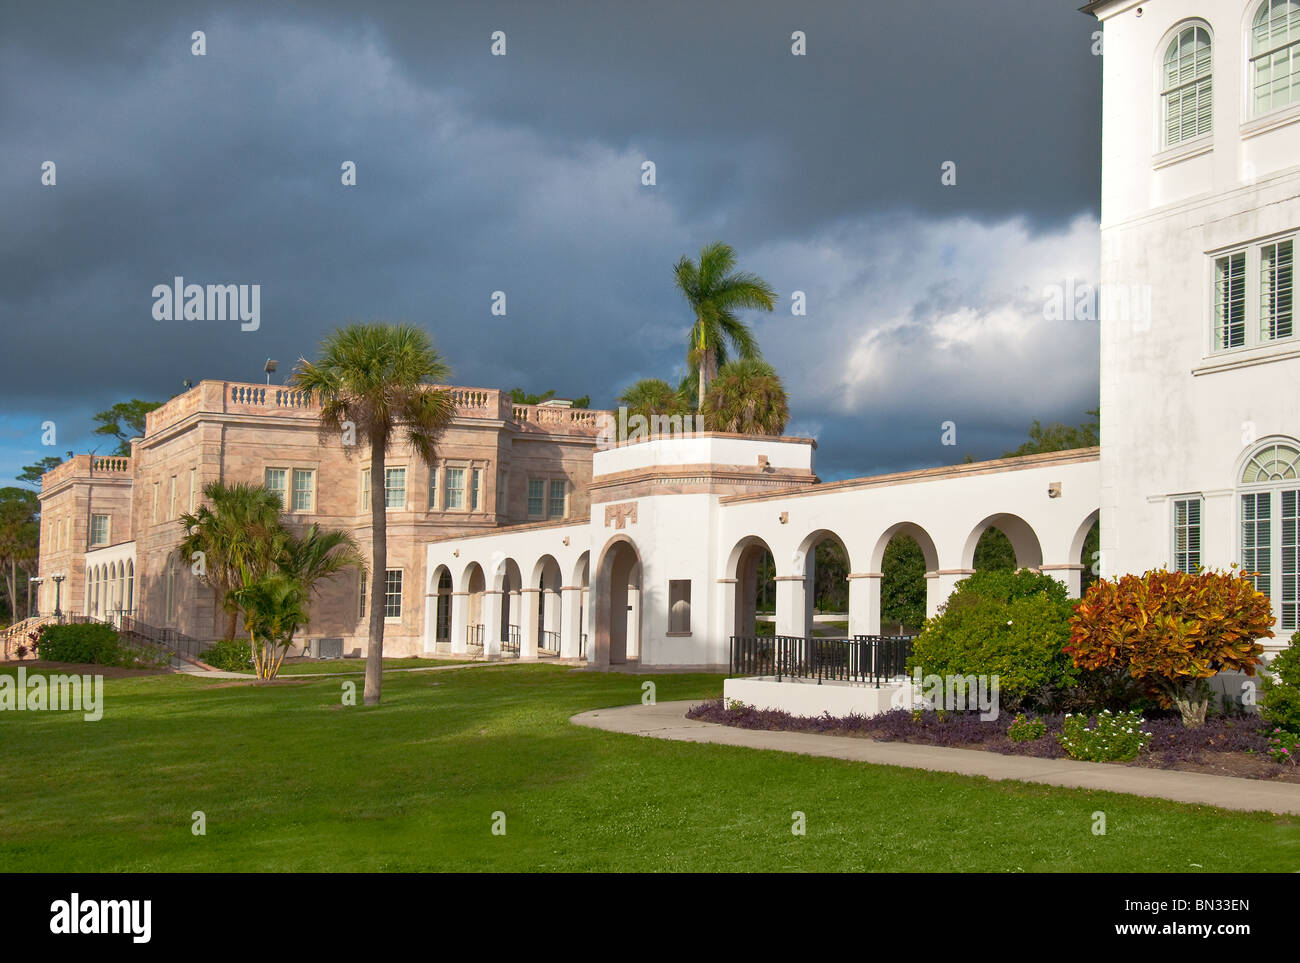 New College Of Florida Founded In 1960, Sarasota, Florida, USA